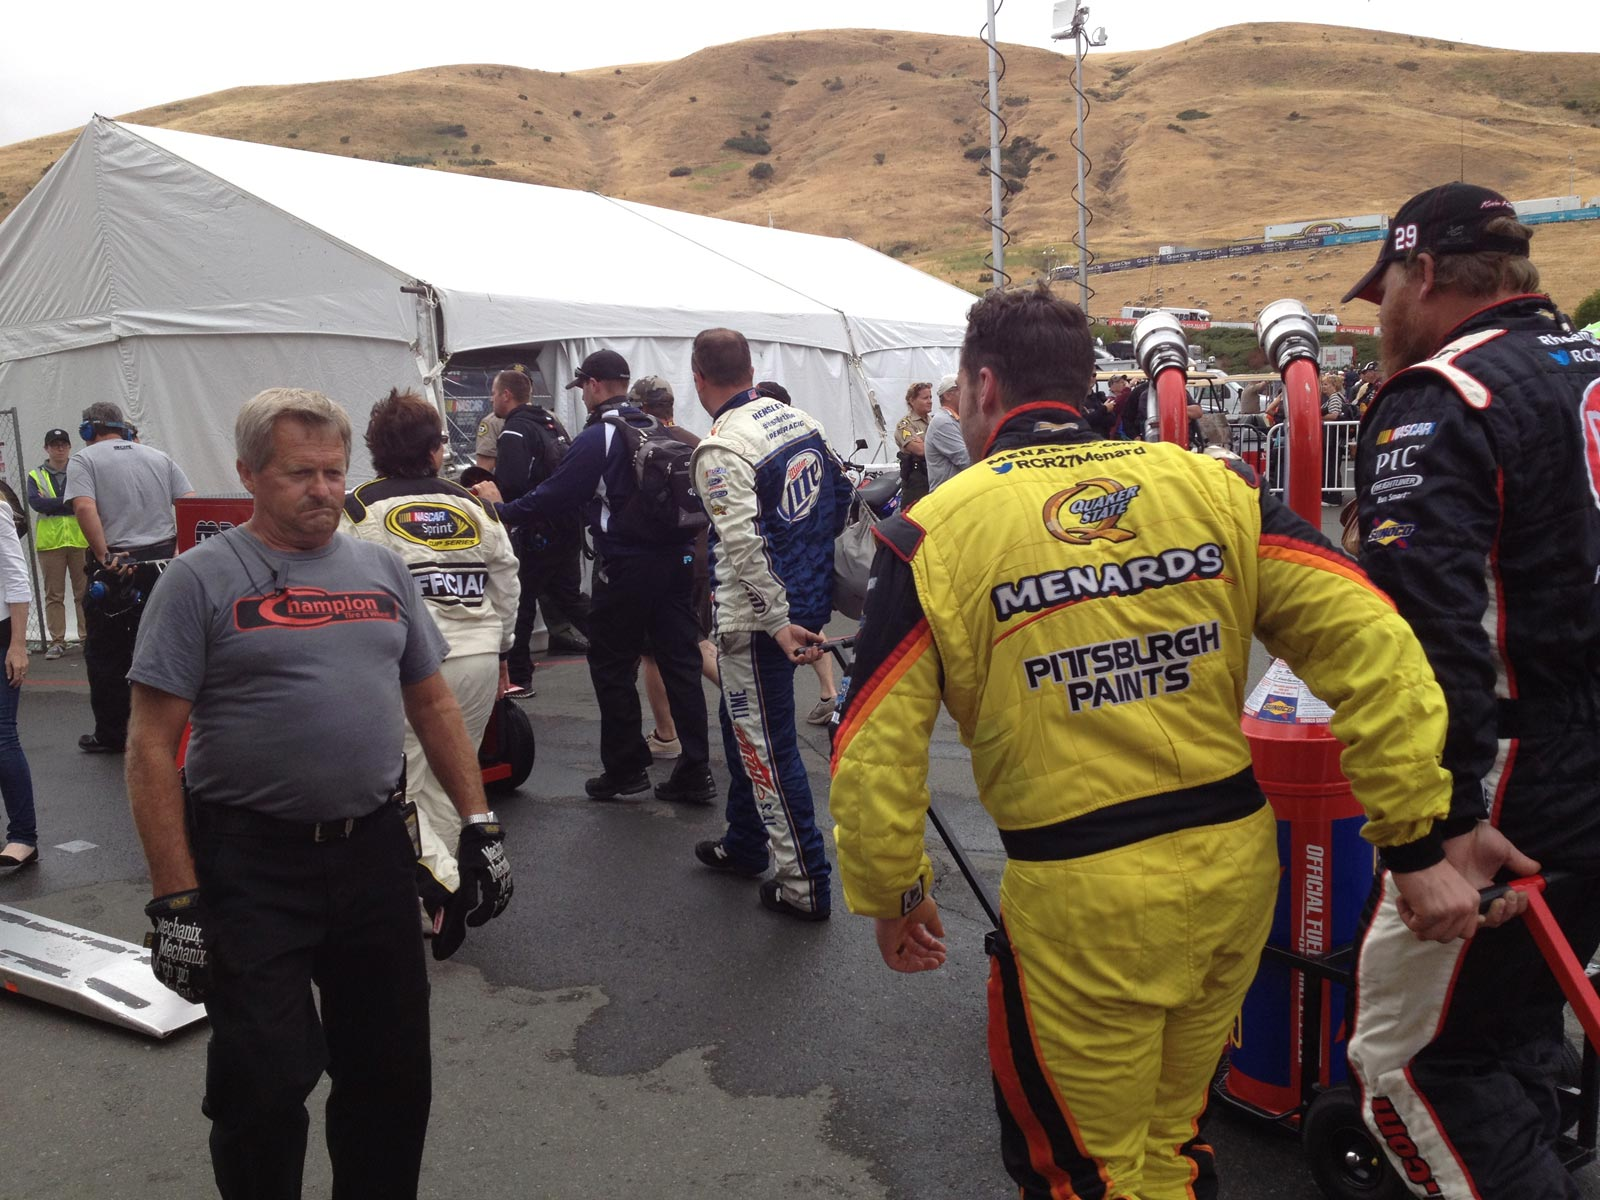 sonoma-sunday-paul-menard